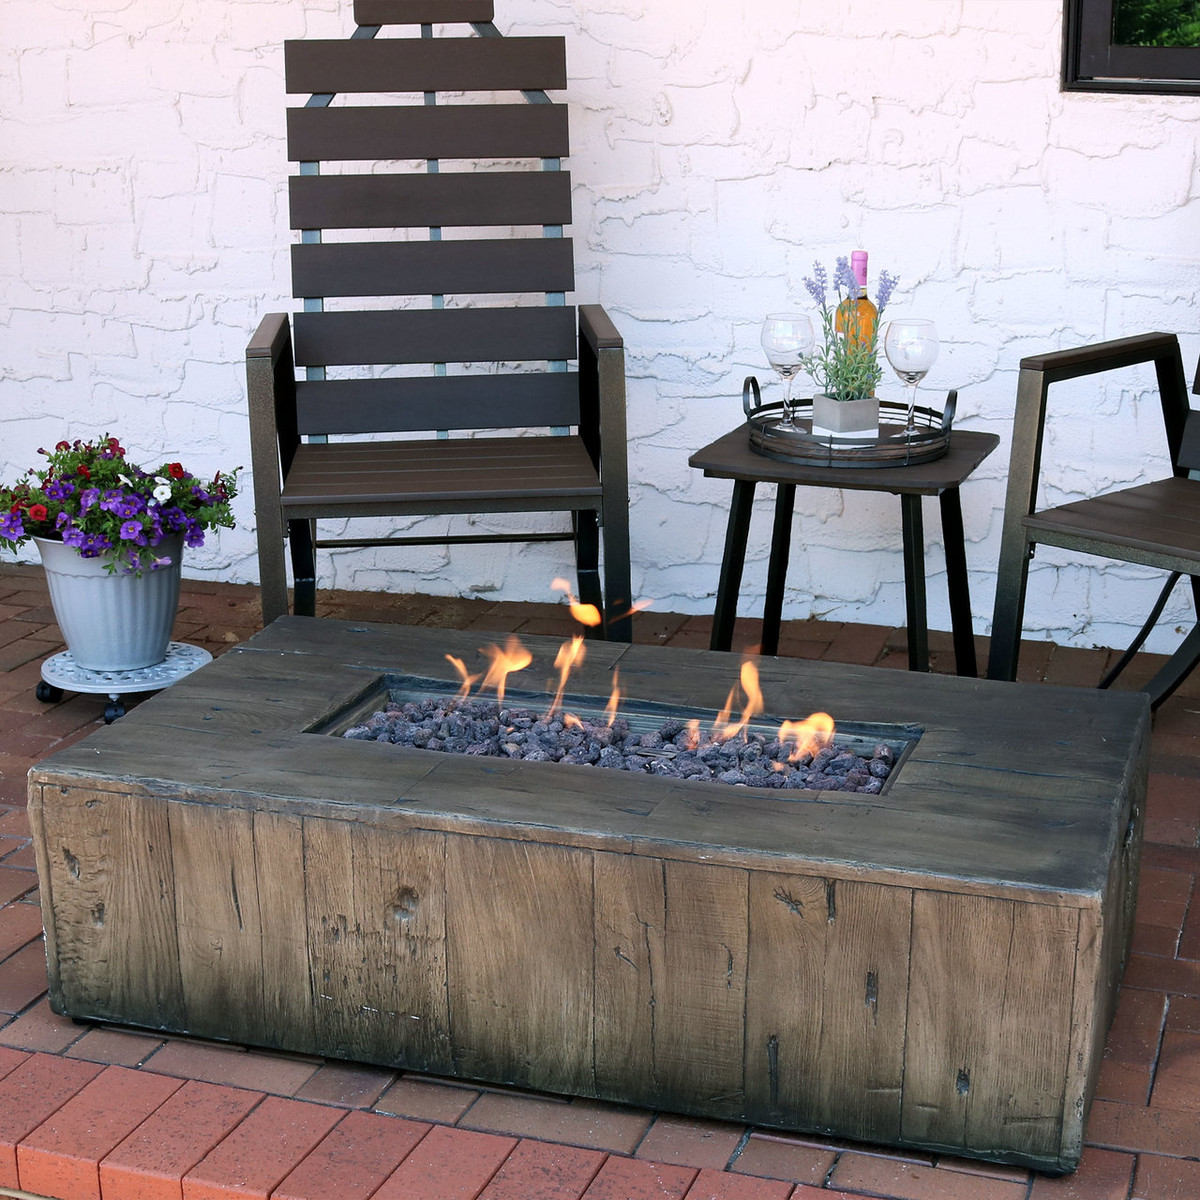 Superb Sunnydaze 48 Inch Rustic Faux Wood Outdoor Propane Gas Fire Unemploymentrelief Wooden Chair Designs For Living Room Unemploymentrelieforg